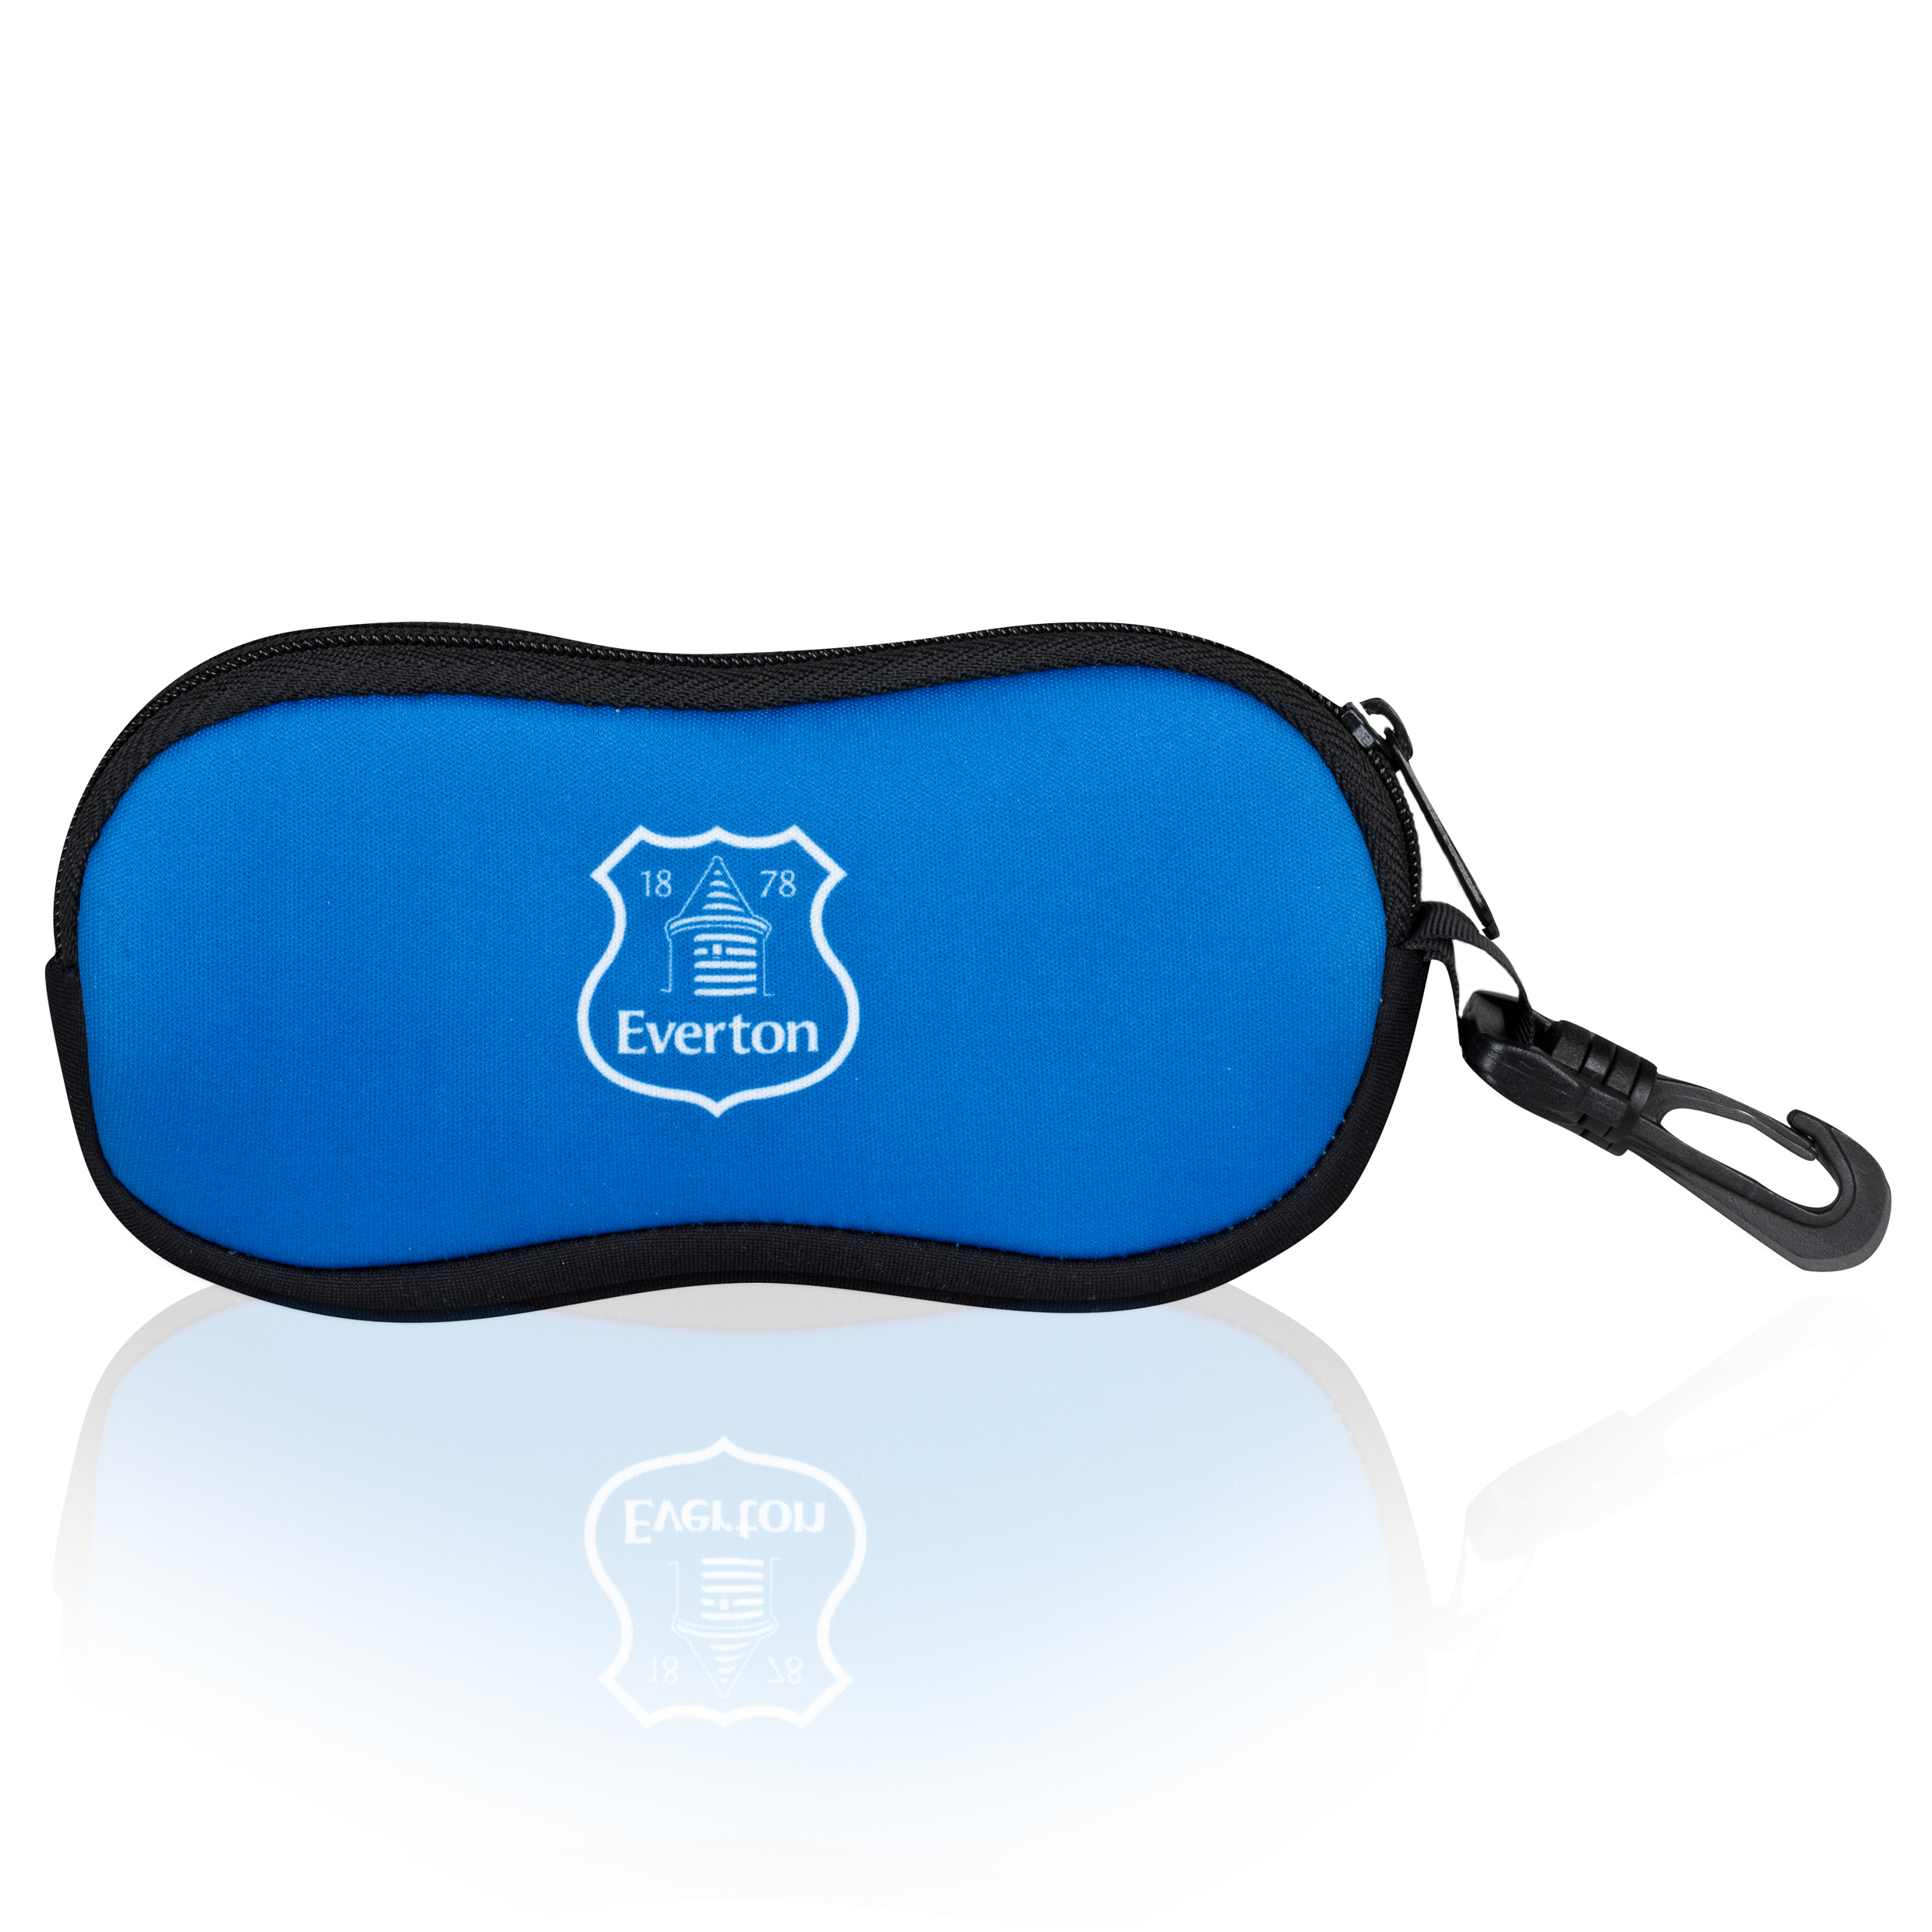 Everton Neoprene Glasses Case